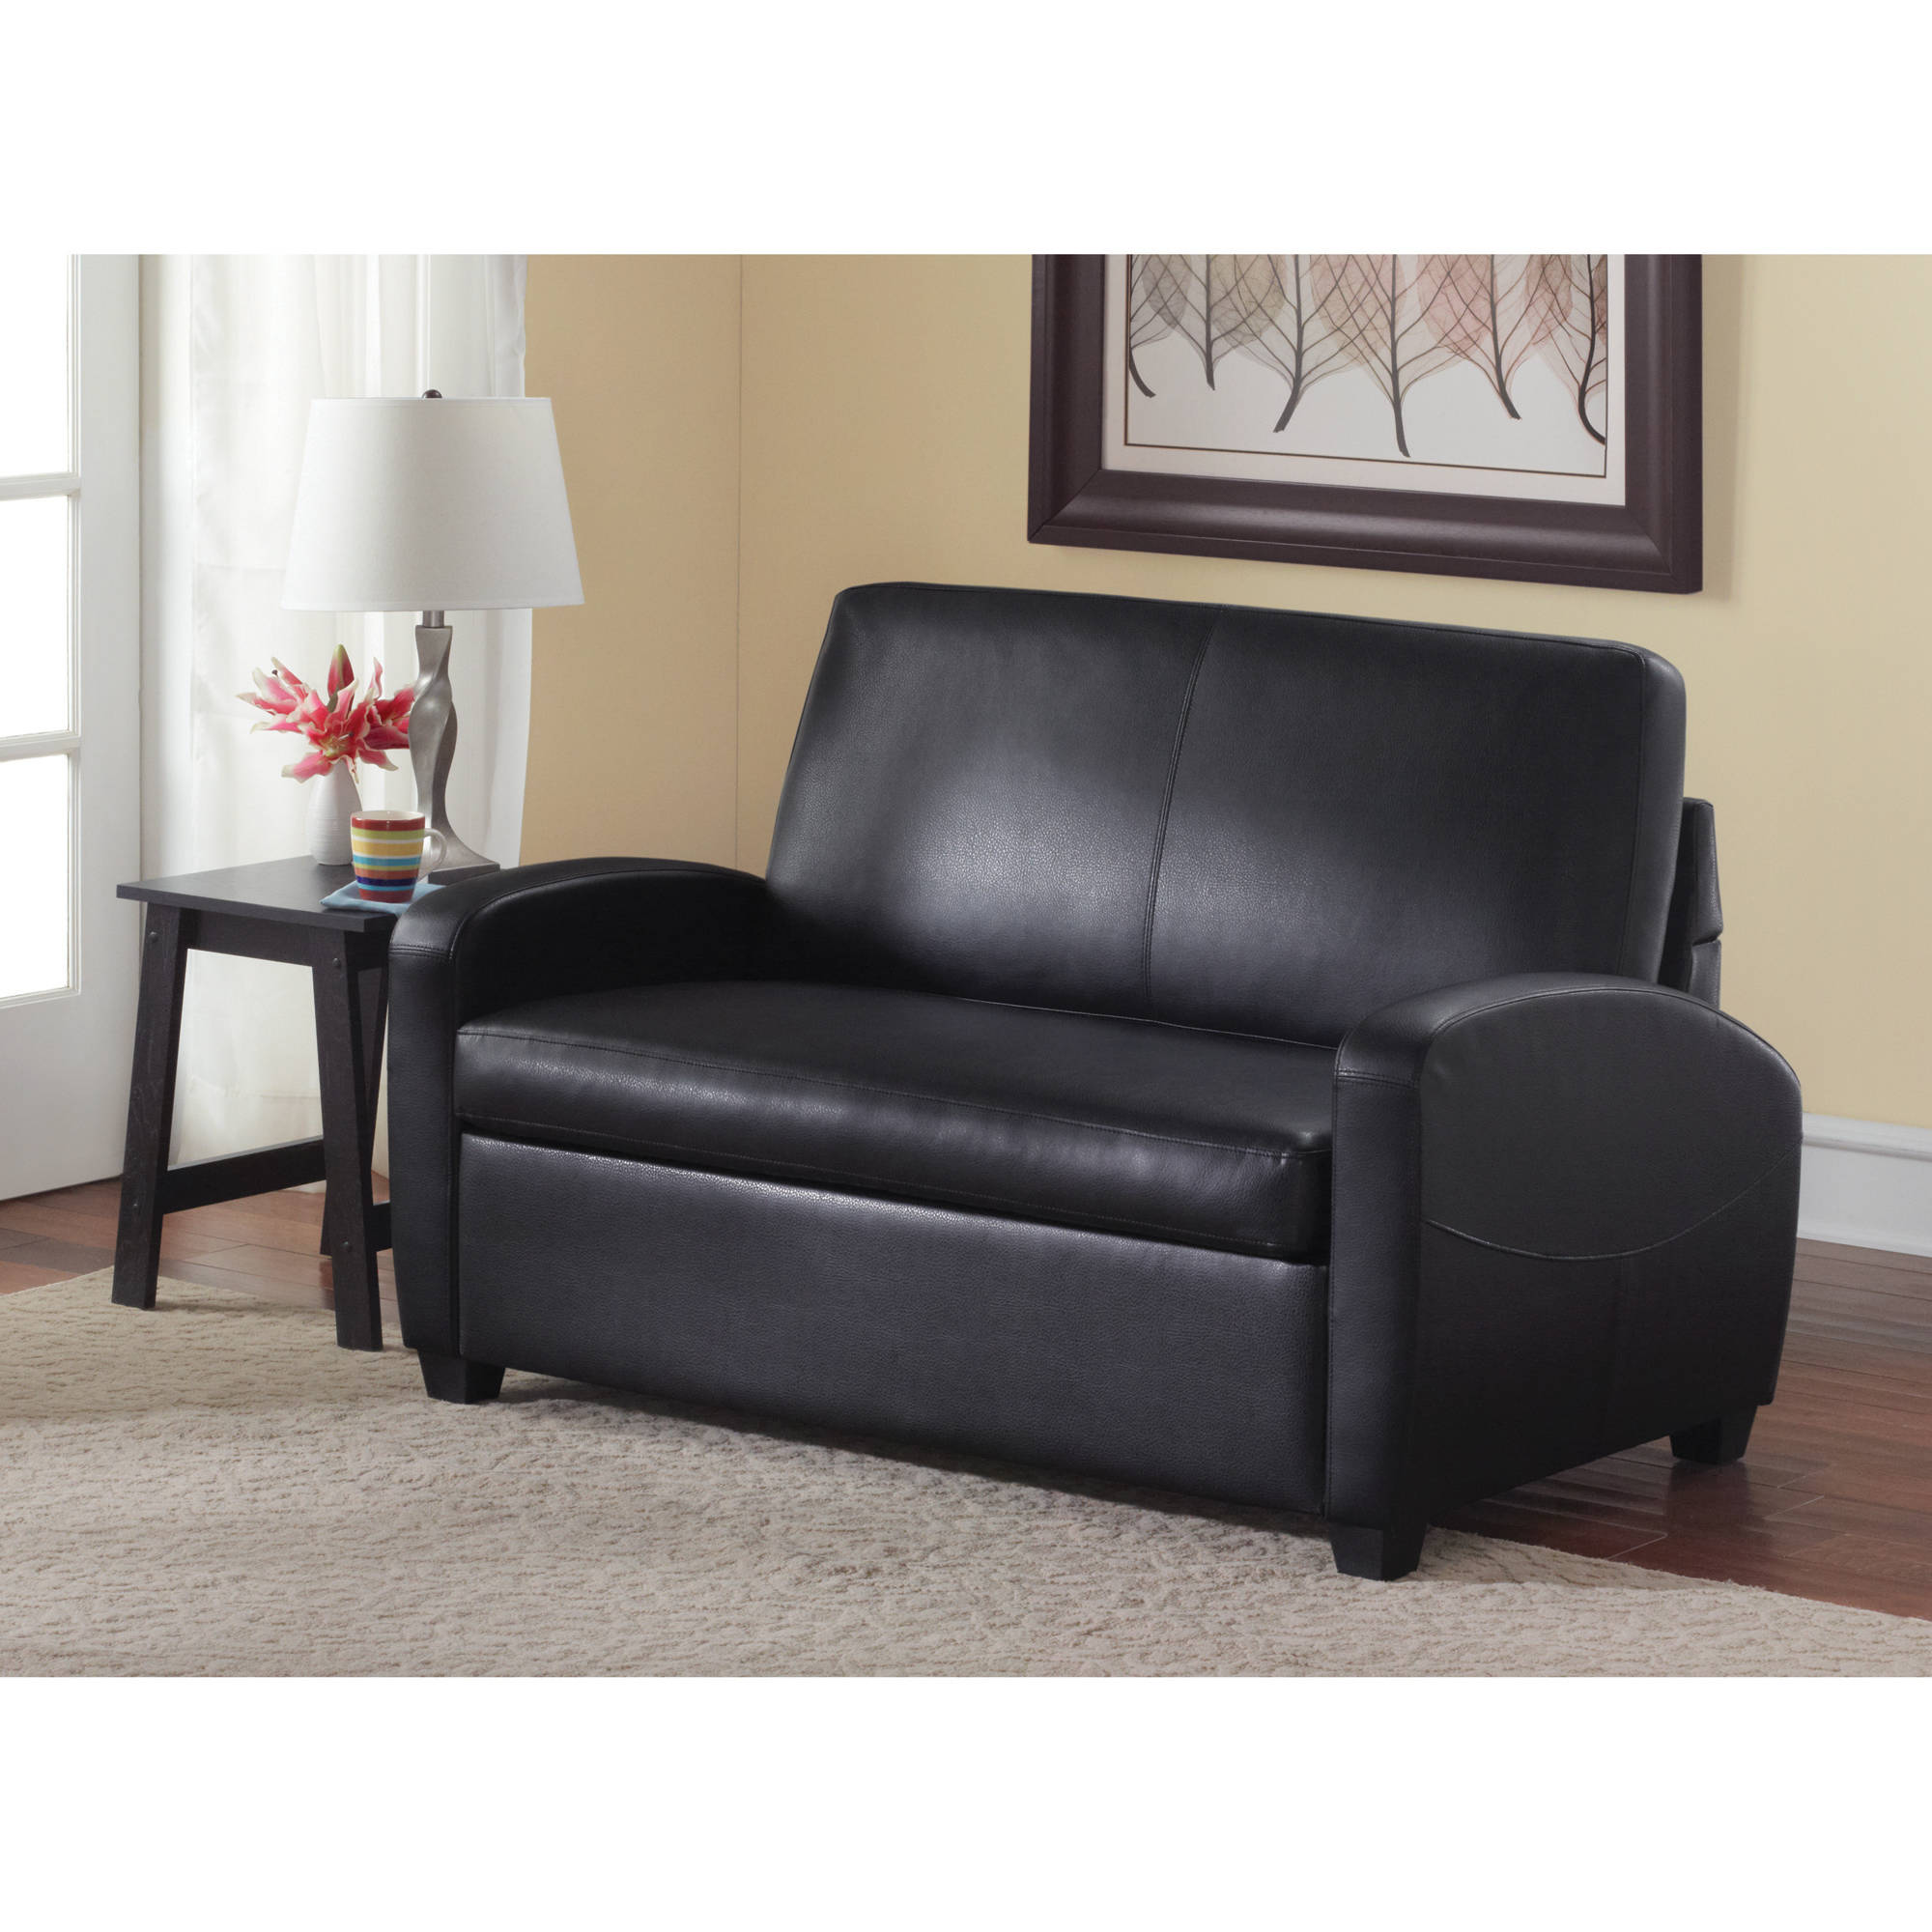 Couch Cover Sofa Mainstays 54